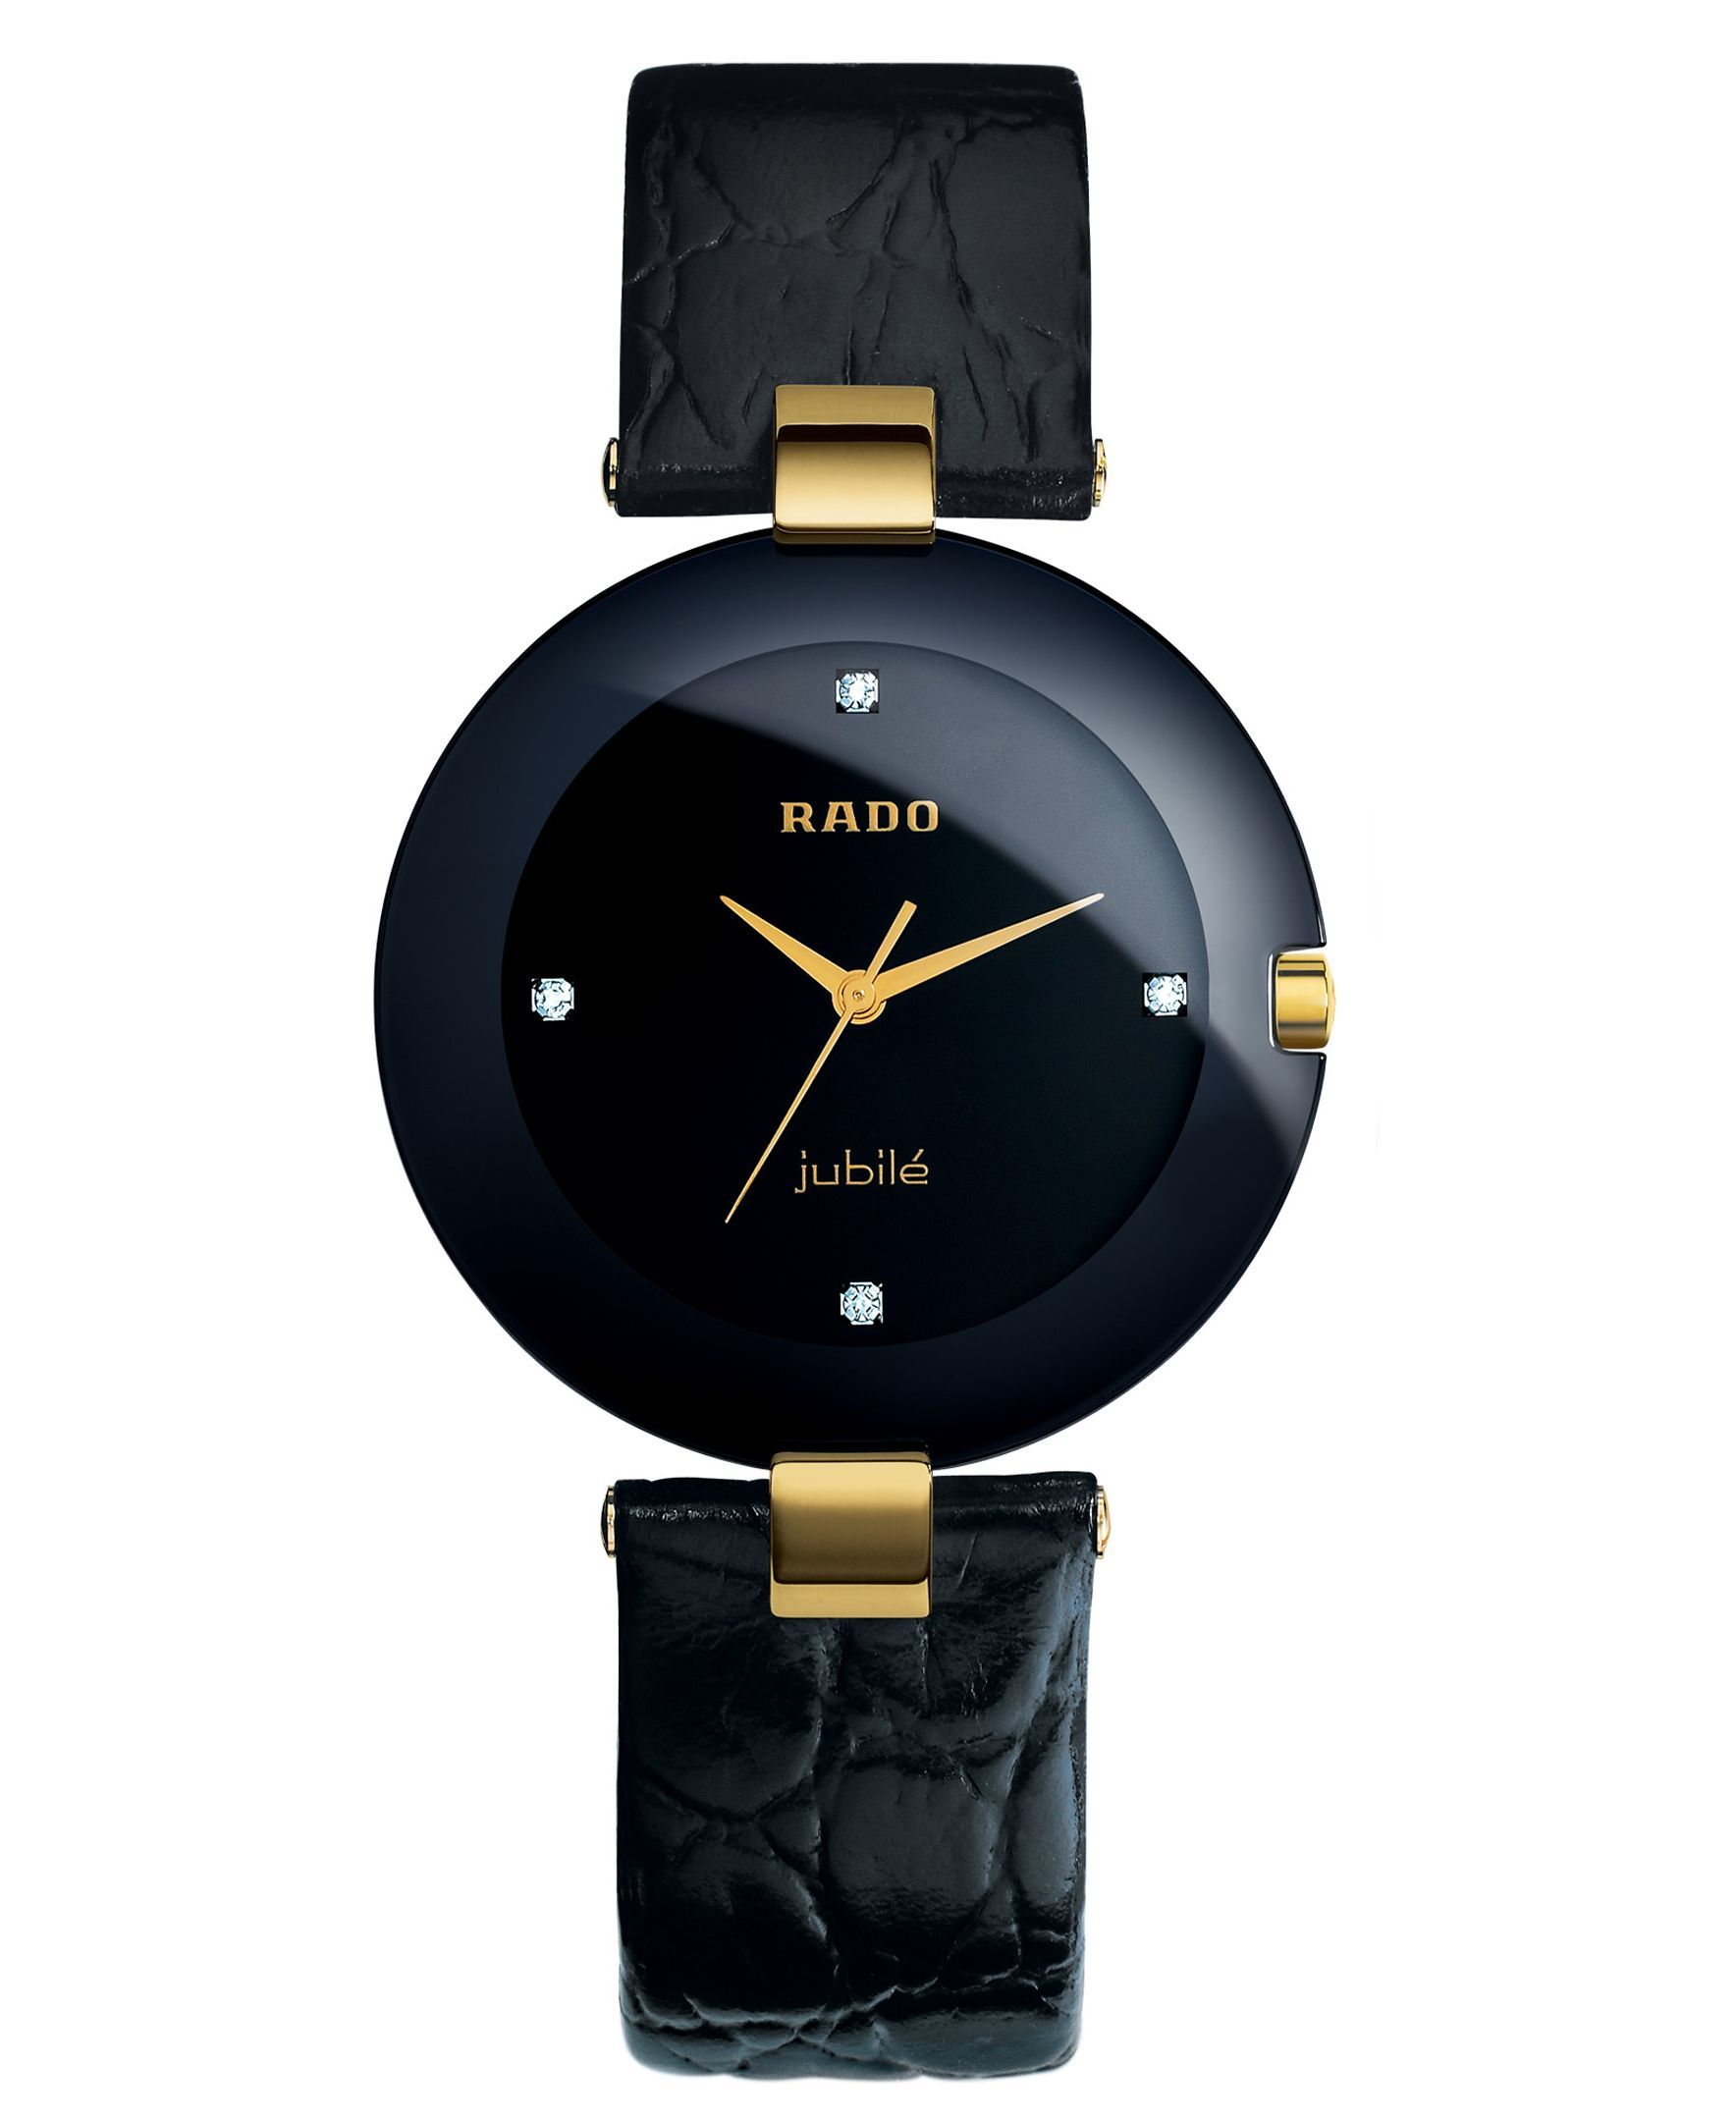 Rado Watch Women S Coupole Diamond Accent Black Leather Strap 35mm R22828715 Reviews Watches Jewelry Watches Macy S Black Leather Strap Leather Timex Watches